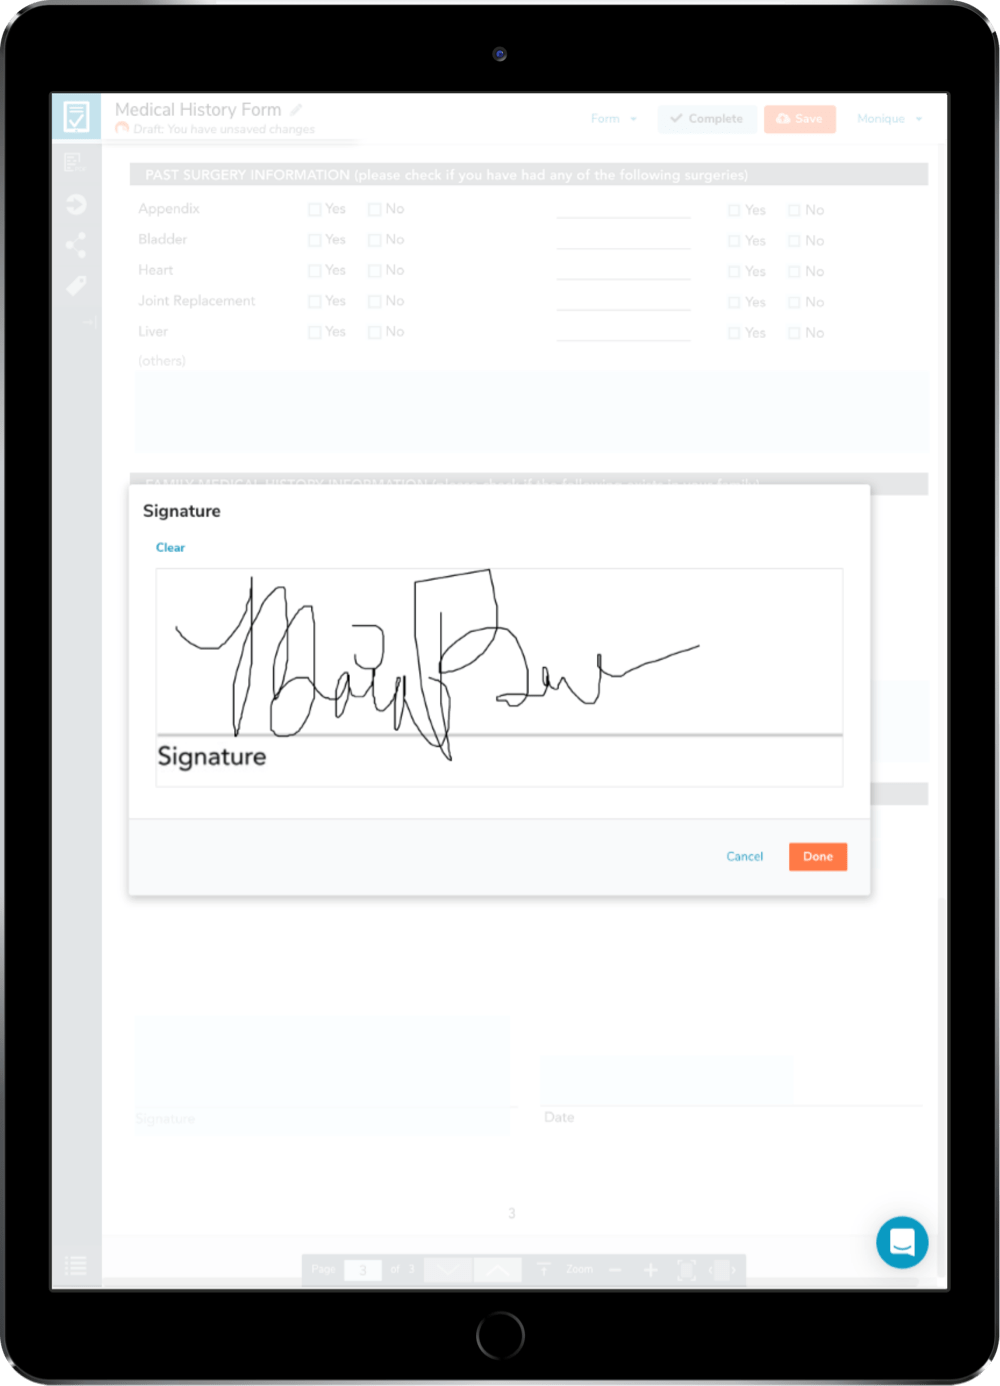 An electronic signature being applied to a digital form on a tablet.